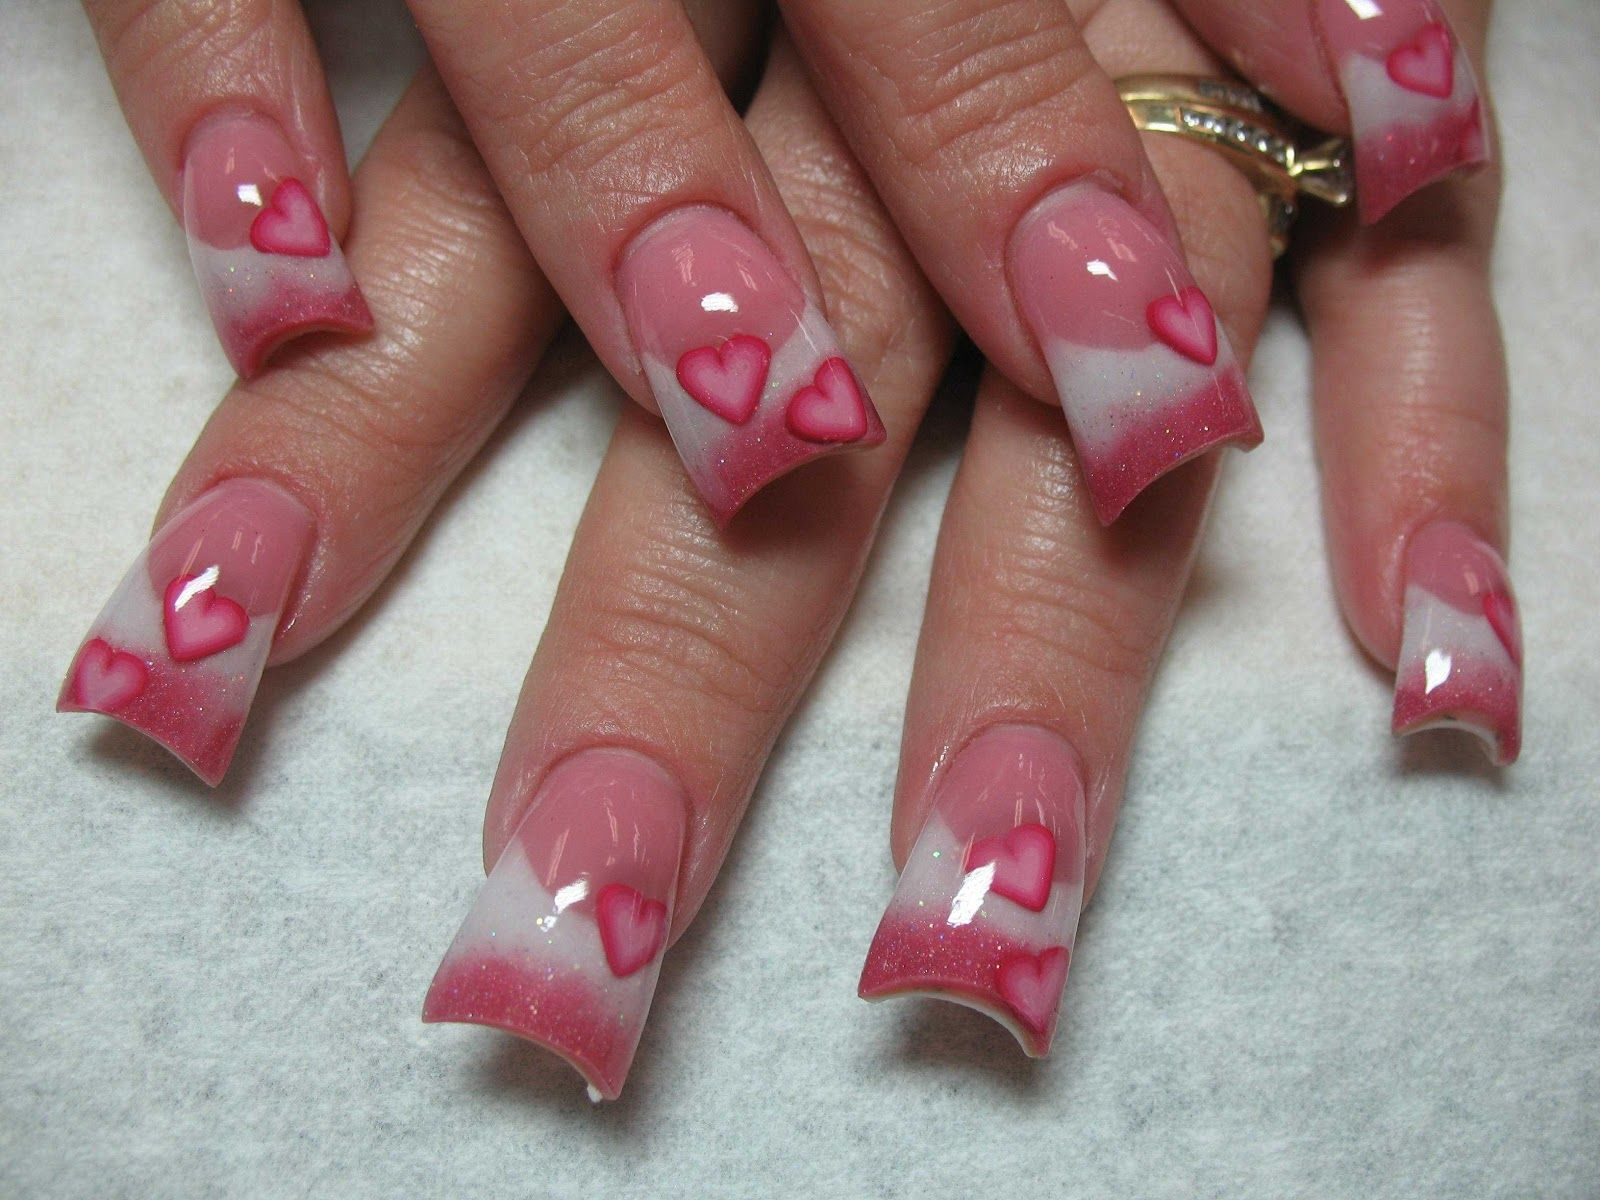 Nail Designs | Valentineu0027s Day Nail Designs Ideas  How To Decorate Nails |  I Love